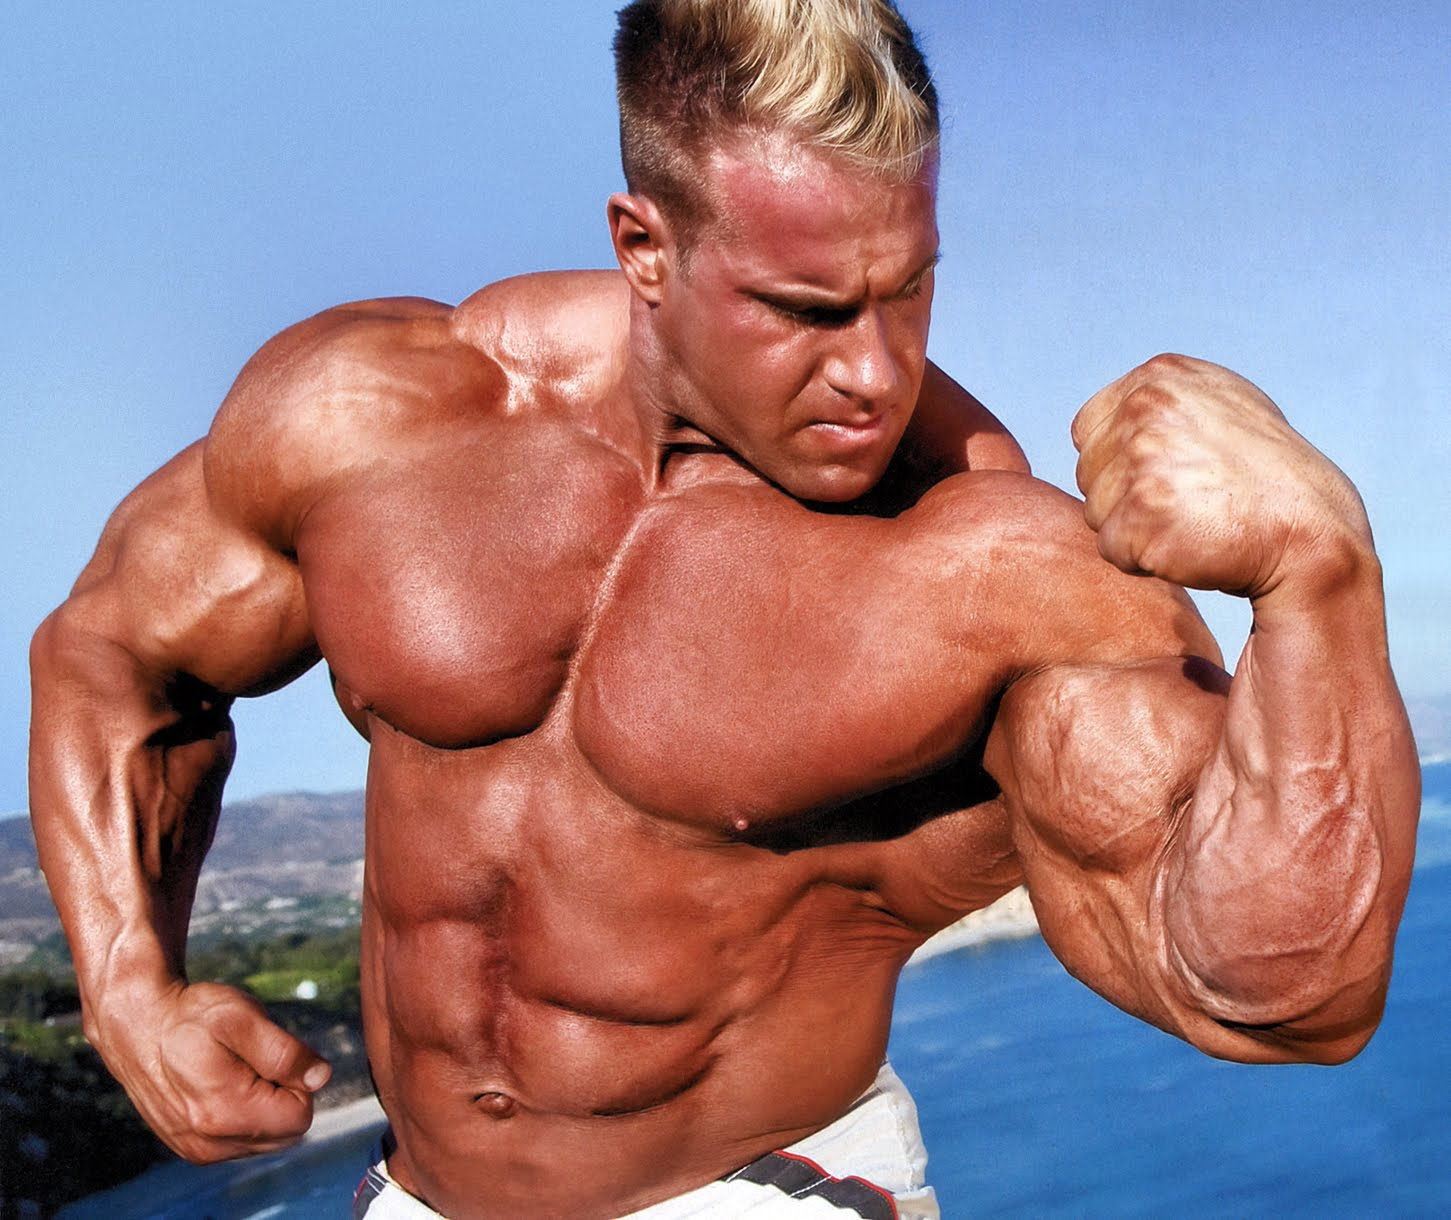 Bodybuilders Habits And Effective Ways To Change Your Approach